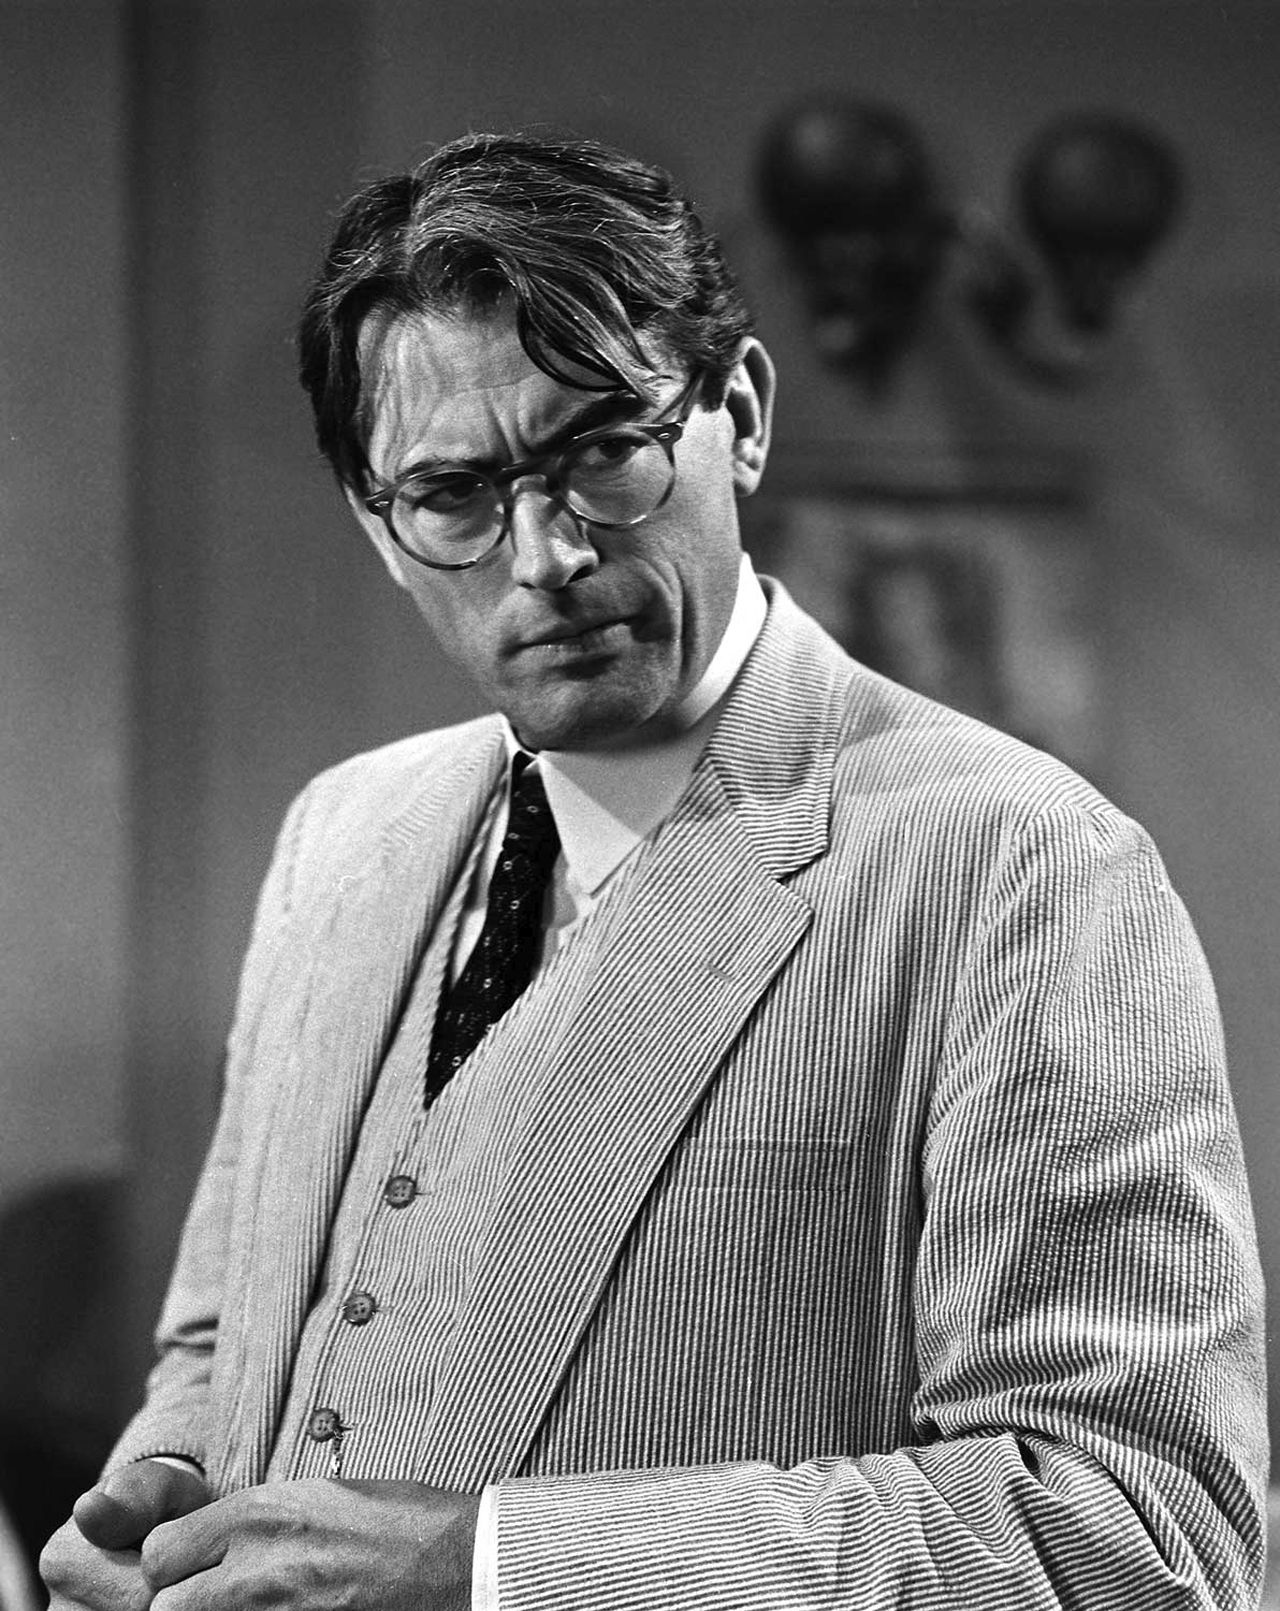 Gregory Peck As Atticus Finch In A Publicity Still From To Kill A